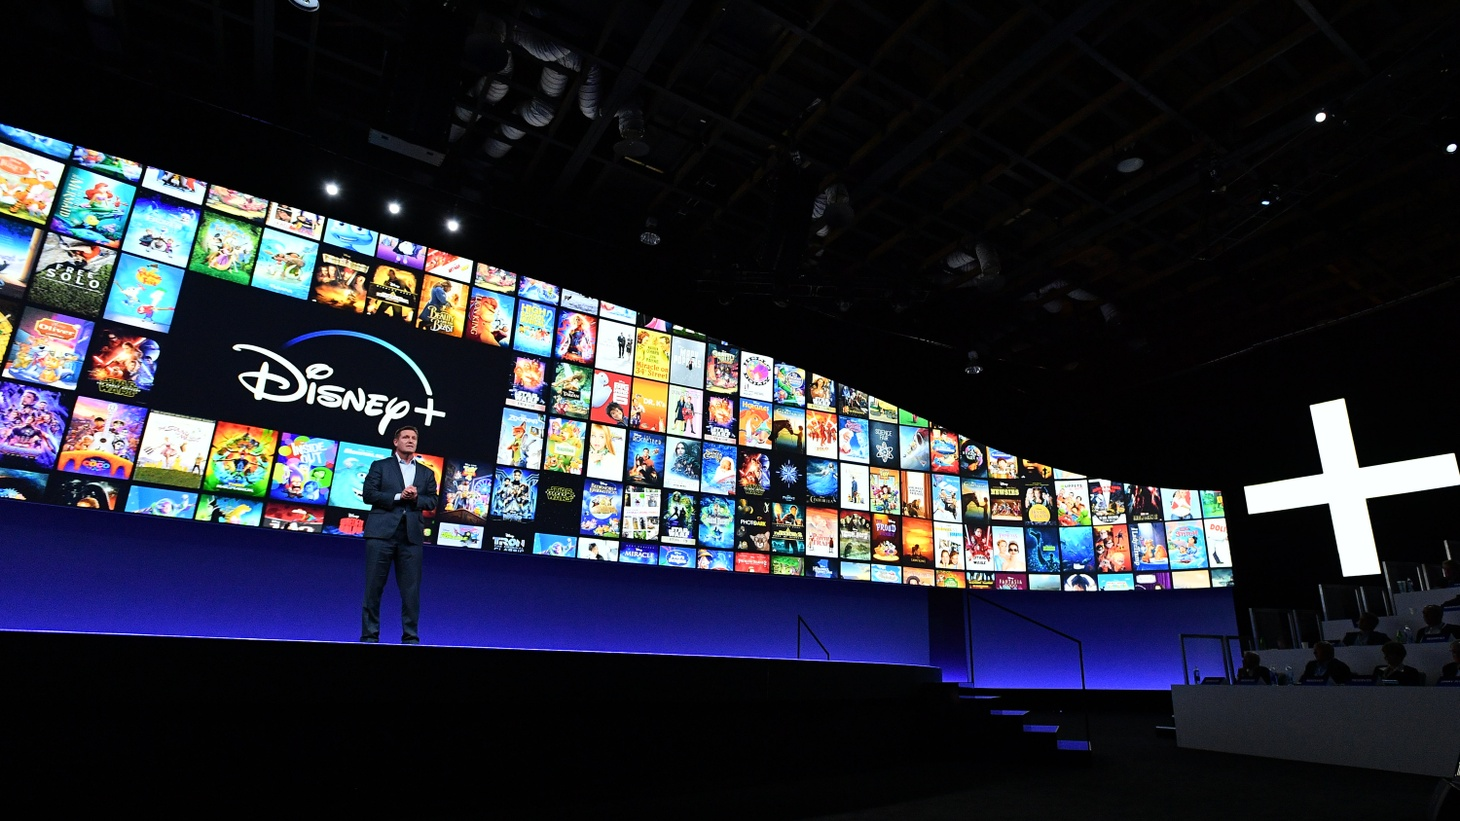 Kevin Mayer, Chairman of Walt Disney Direct-to-Consumer & International, speaks at Disney+ Investor Day in 2019.